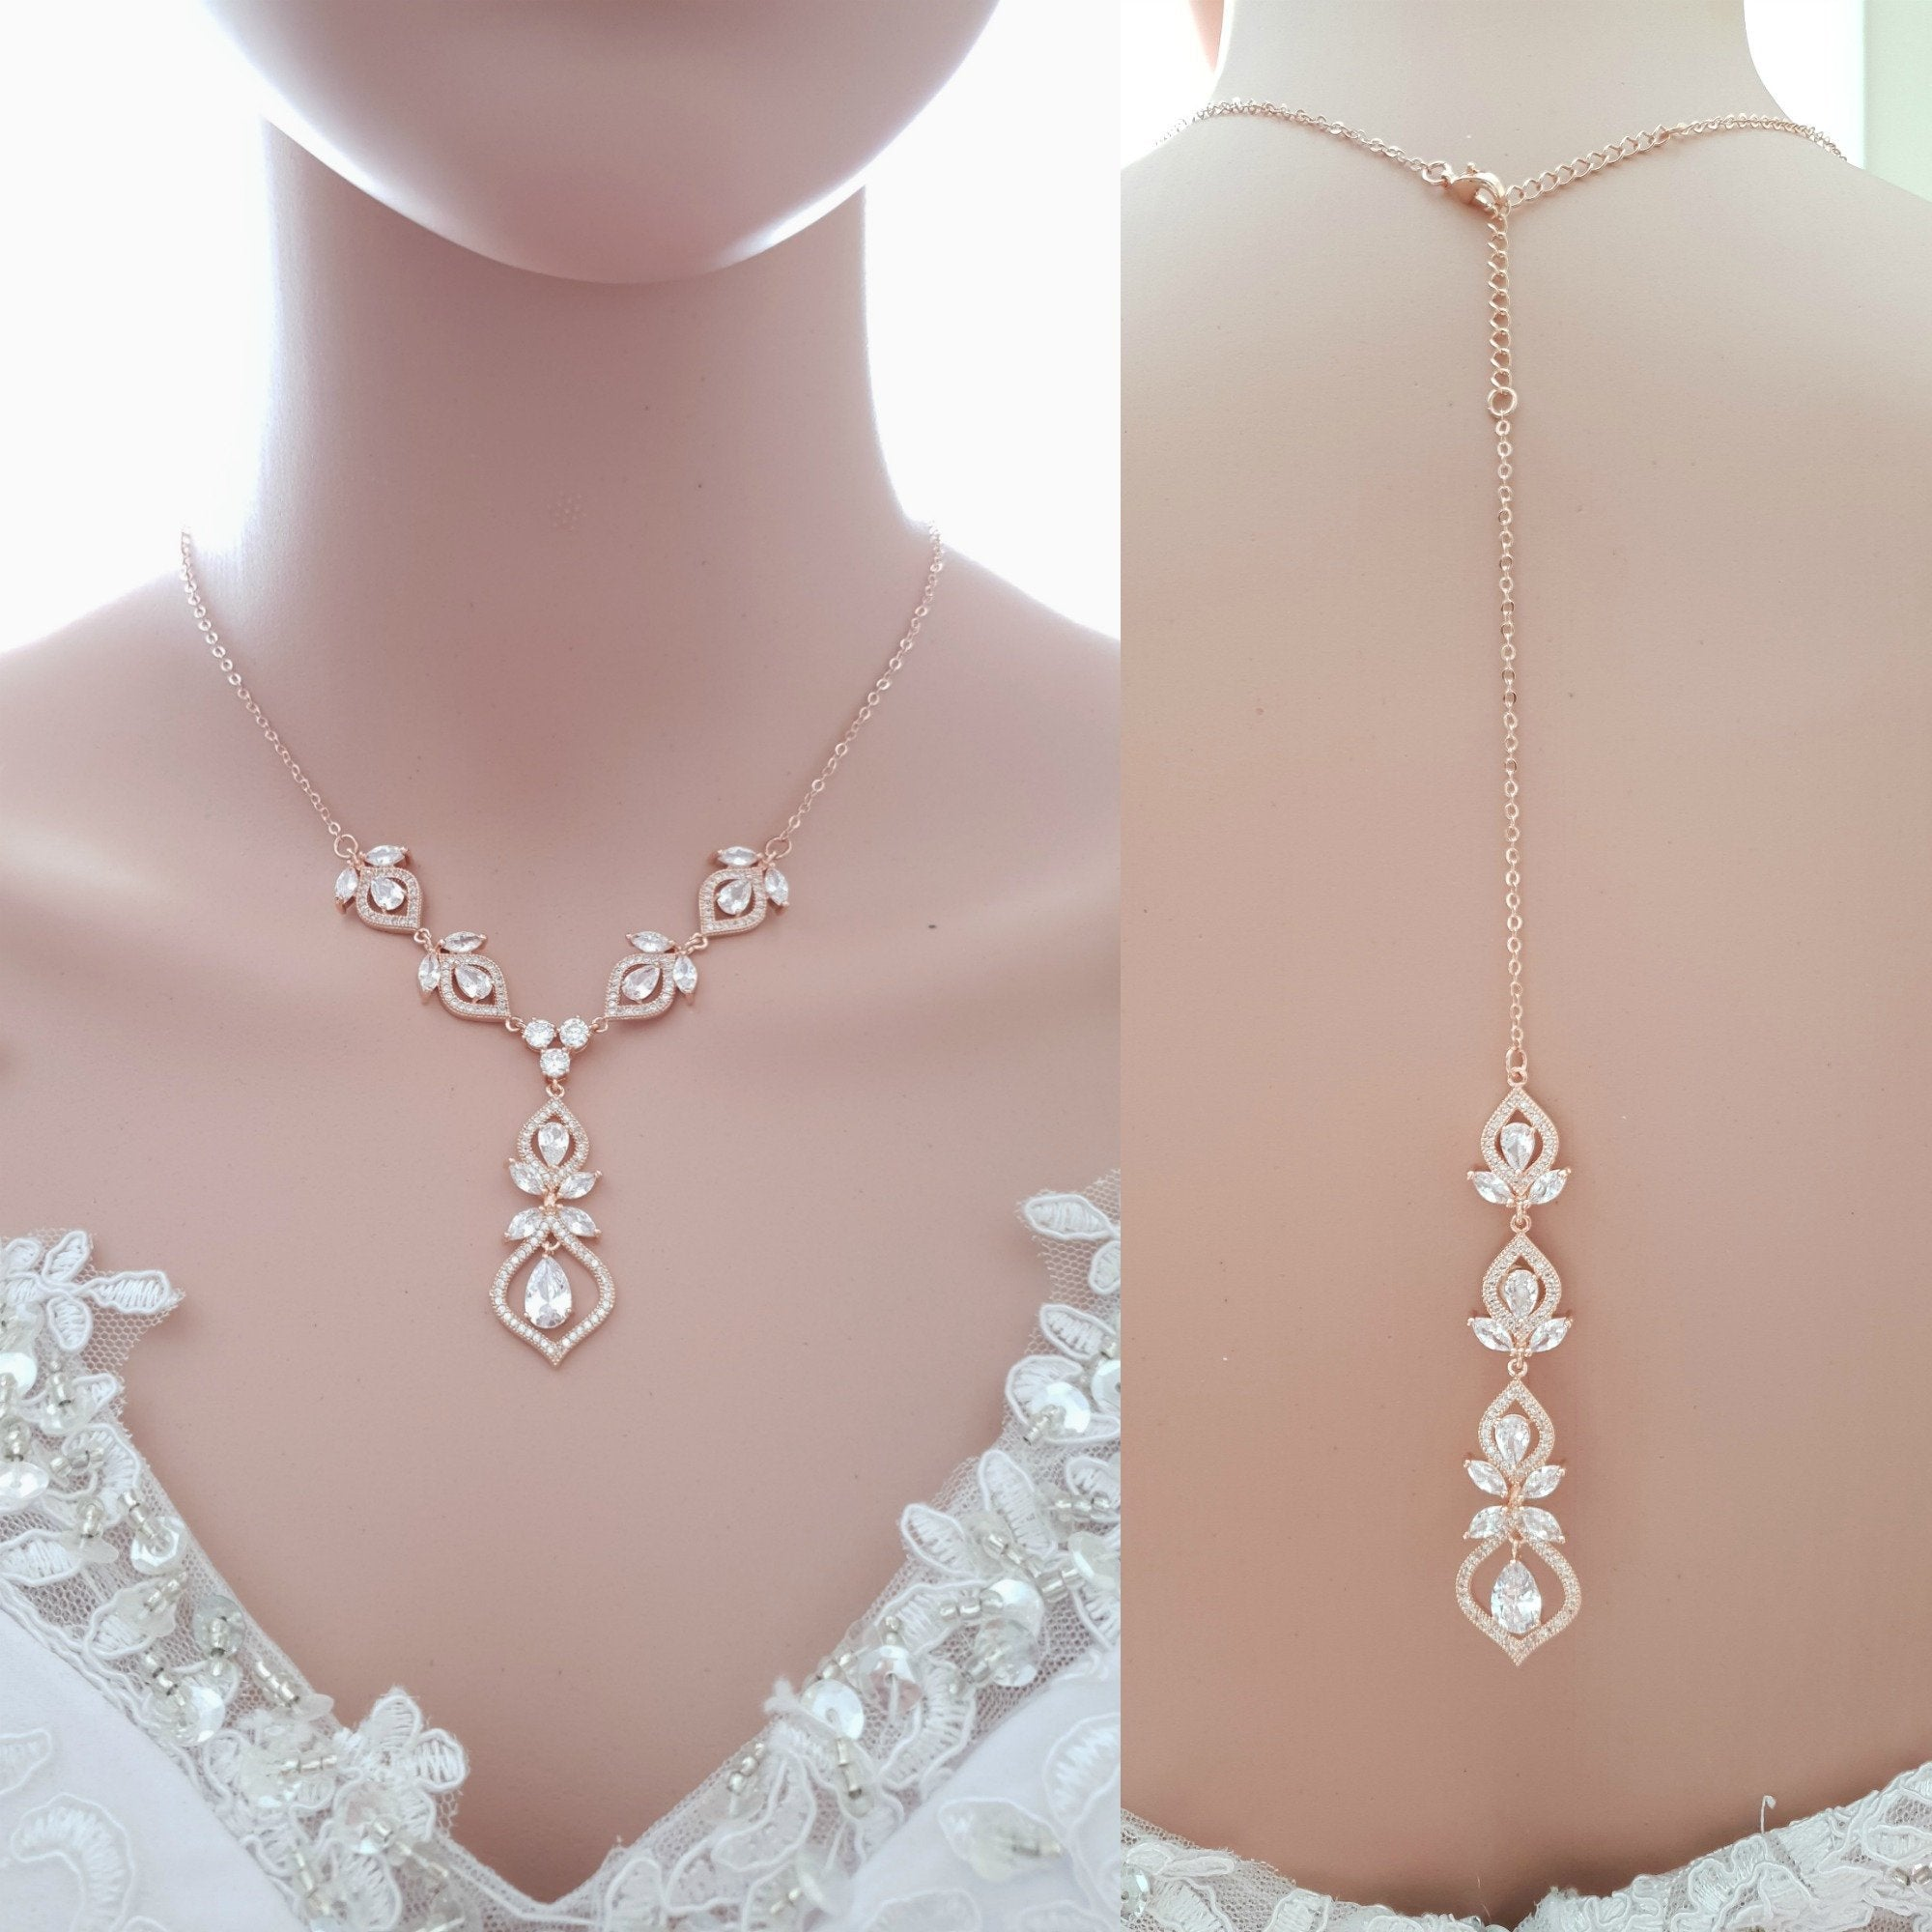 Back Necklace Rose Gold Bridal Necklace Crystal Wedding Necklace Gold Back Drop Necklace Backdrop Necklace for Brides Bridal Jewelry Meghan